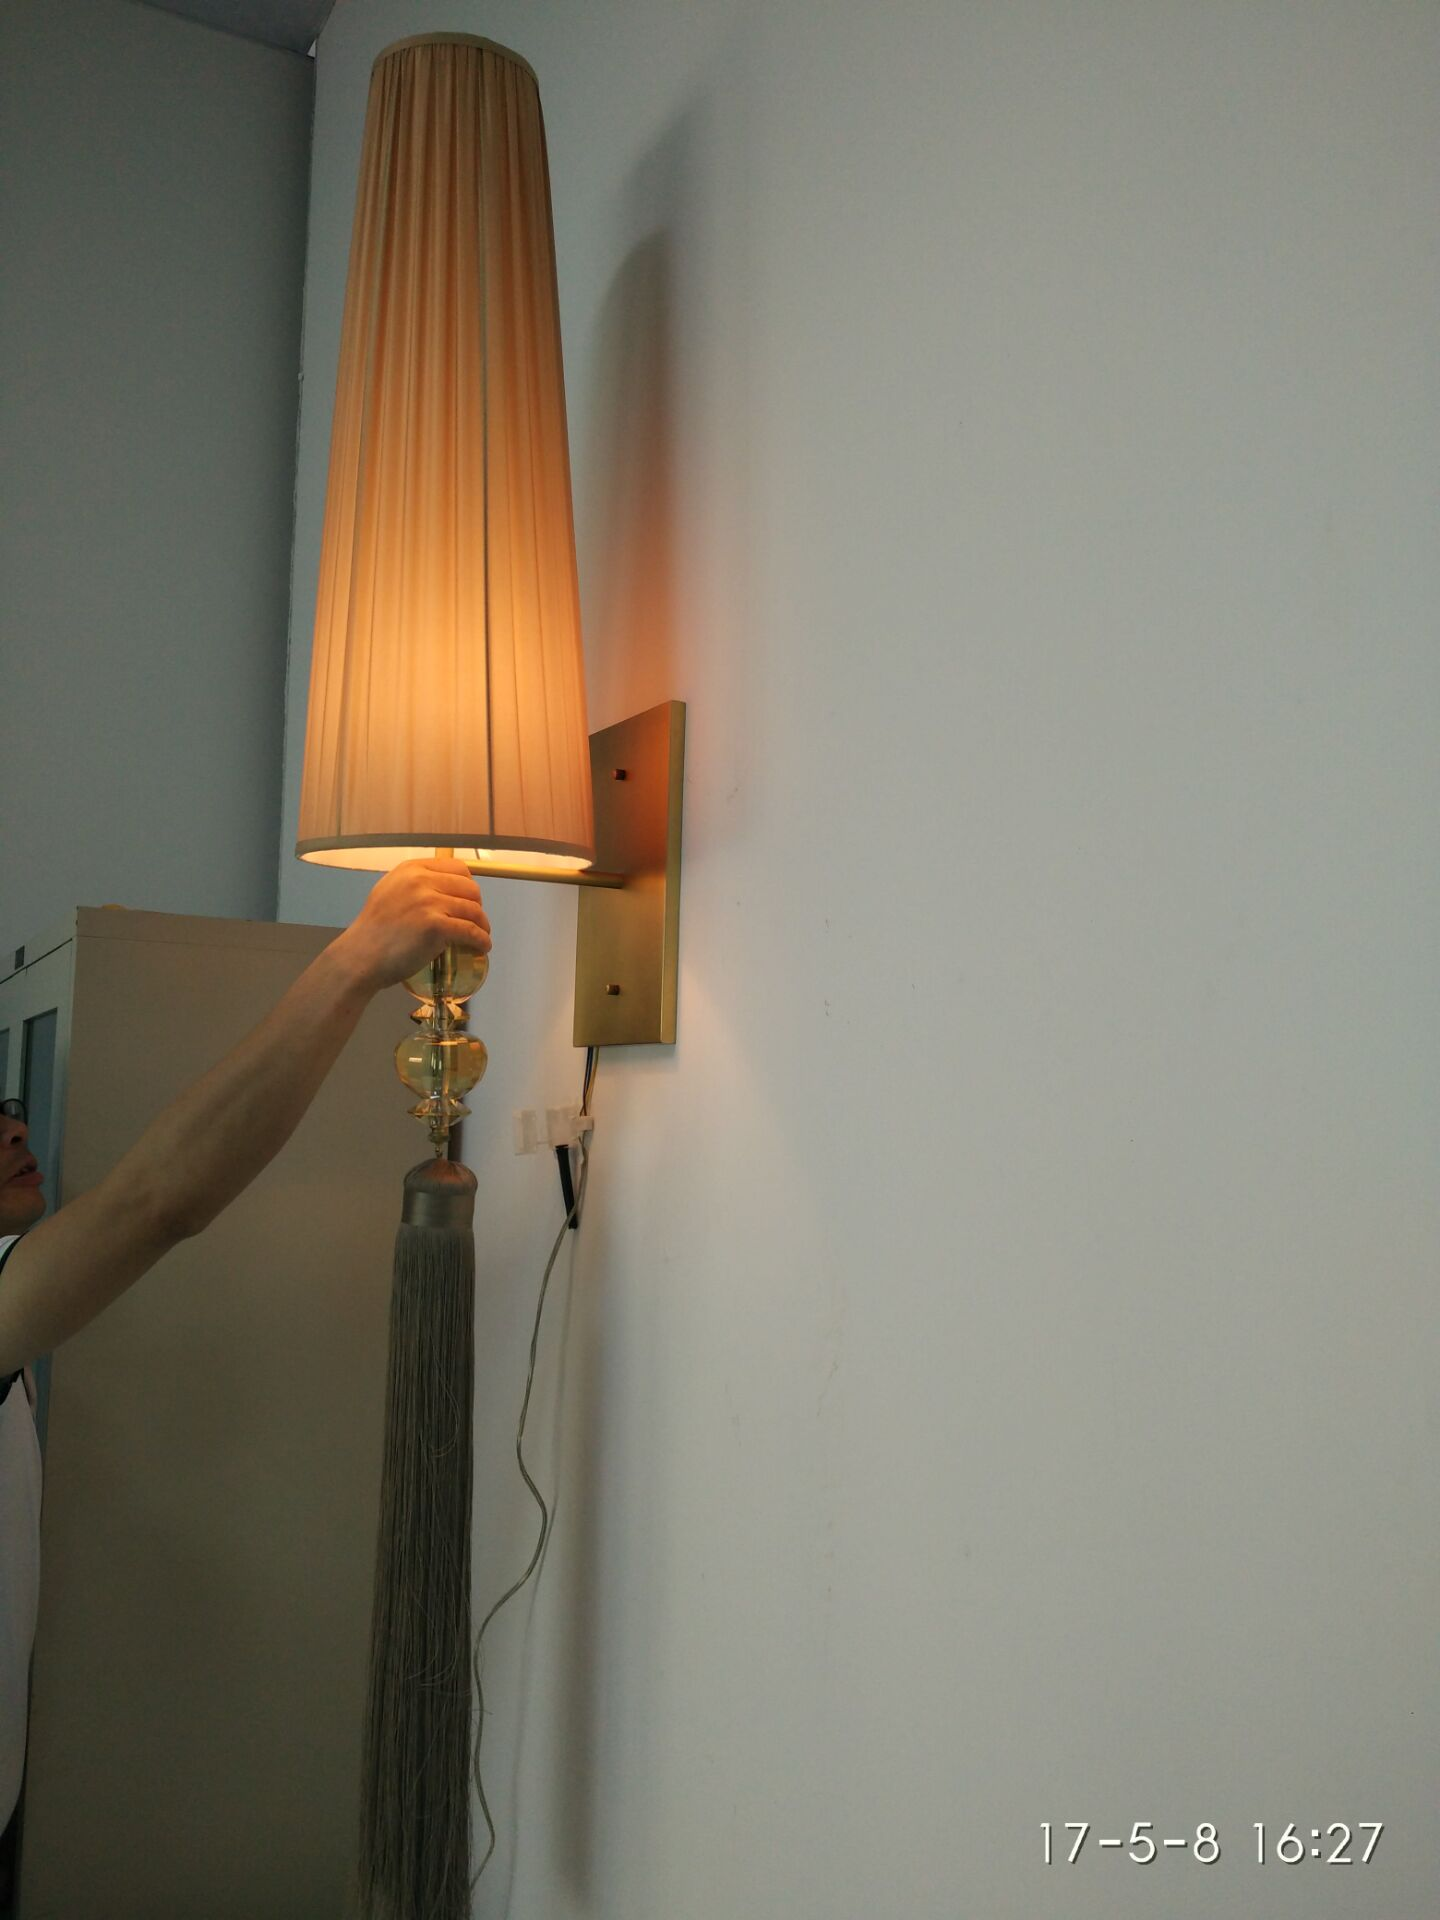 Luz modificada para requisitos particulares sitio de la pared del proyecto del hotel (KA170301-3)